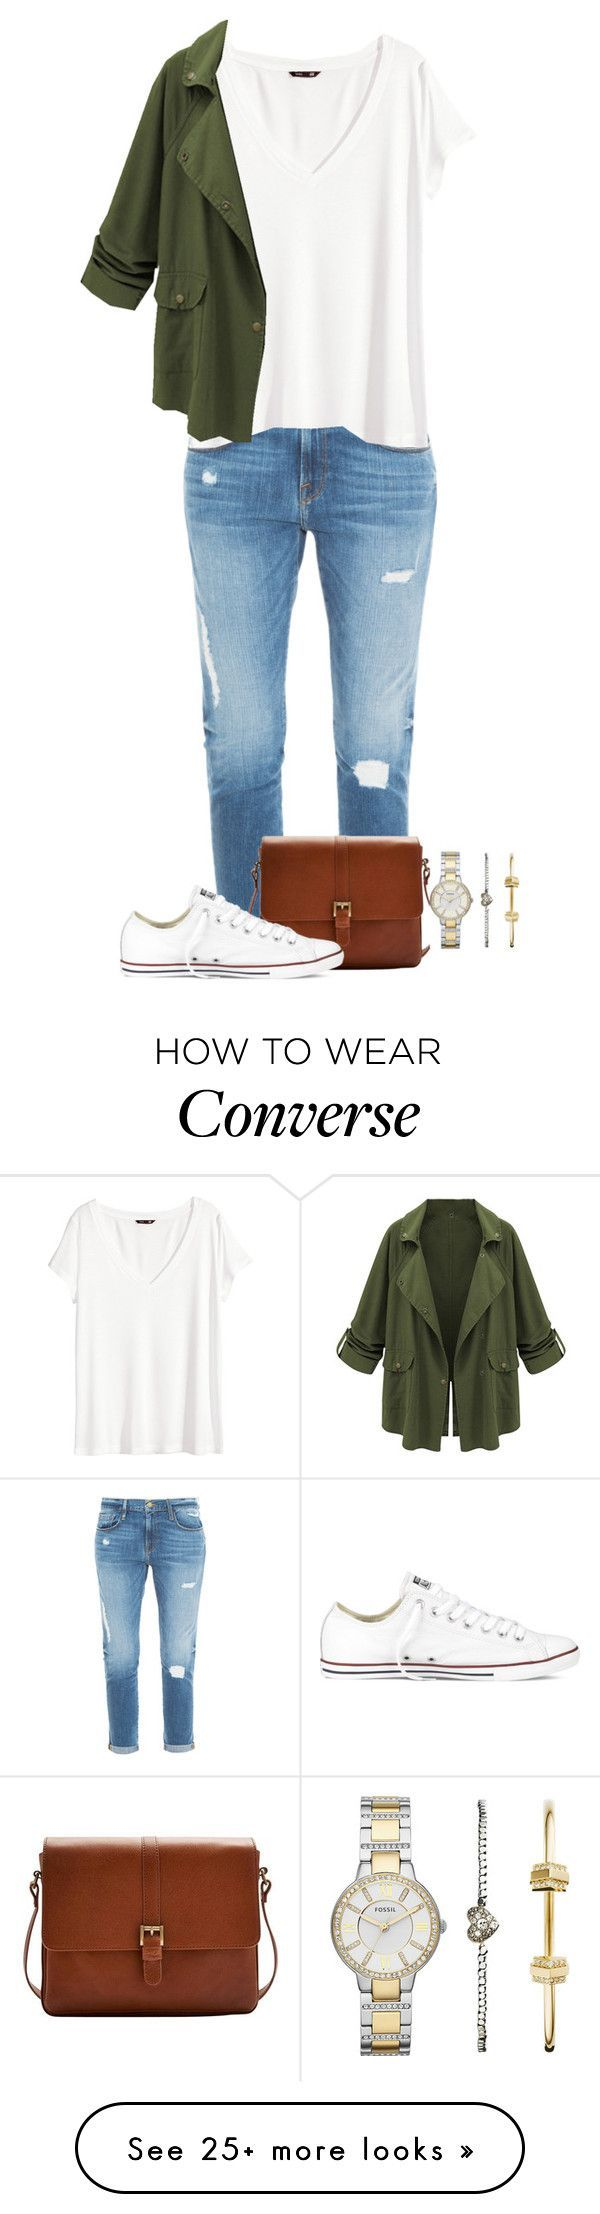 """untitled 50"" by caro3302 on Polyvore featuring Frame Denim, Joules, Converse, H&M and FOSSIL"